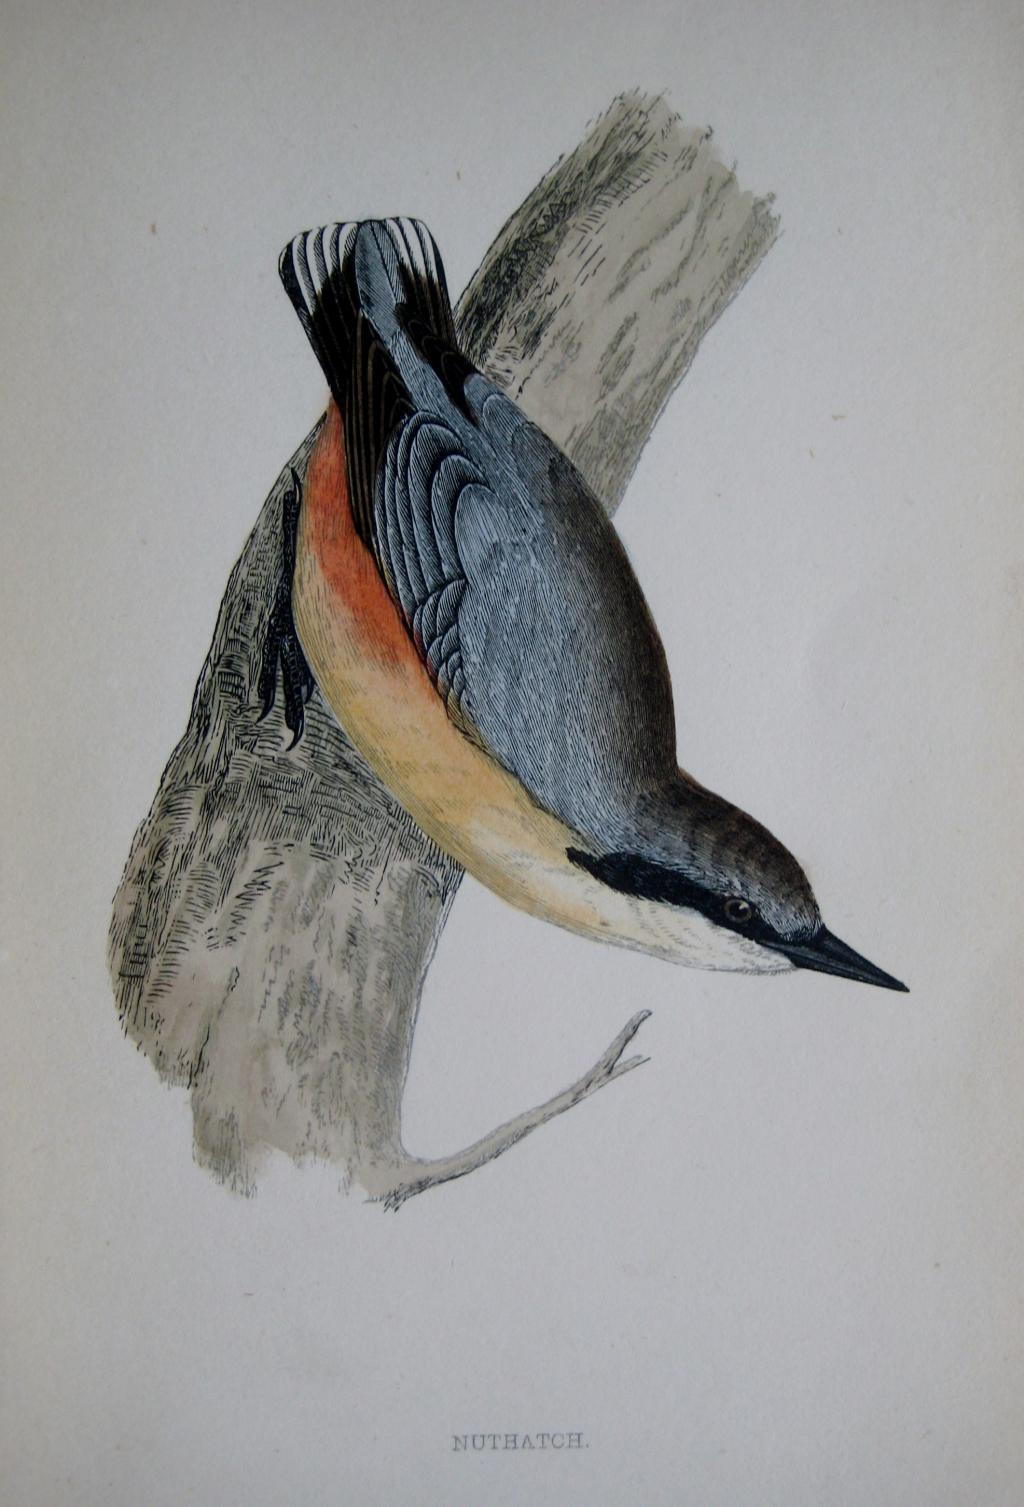 NUTHATCH by REV F.O. MORRIS c1851